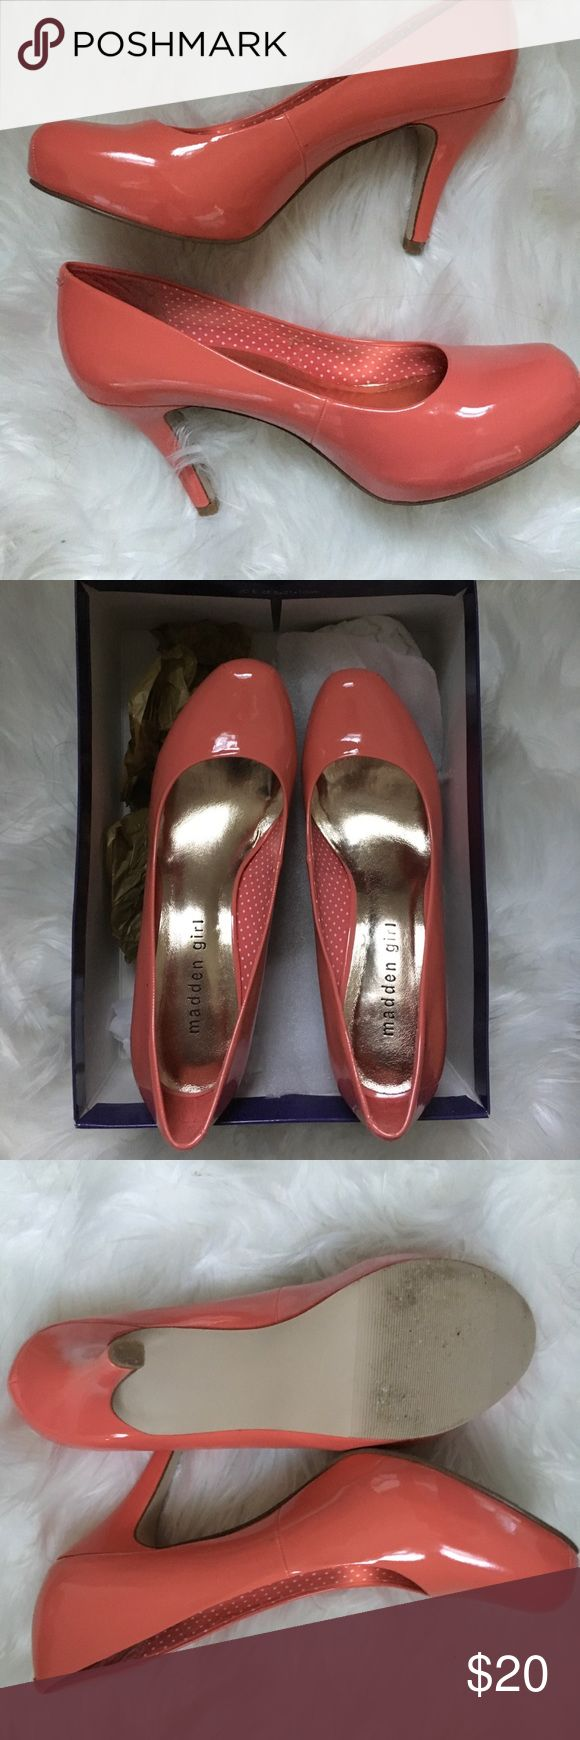 Perfect for spring!  Steve Madden Coral heels! Like new coral heels just in time for Spring!  Only worn for a few hours!  A little big for a 7.5 so didn't work for me. Steve Madden Shoes Heels